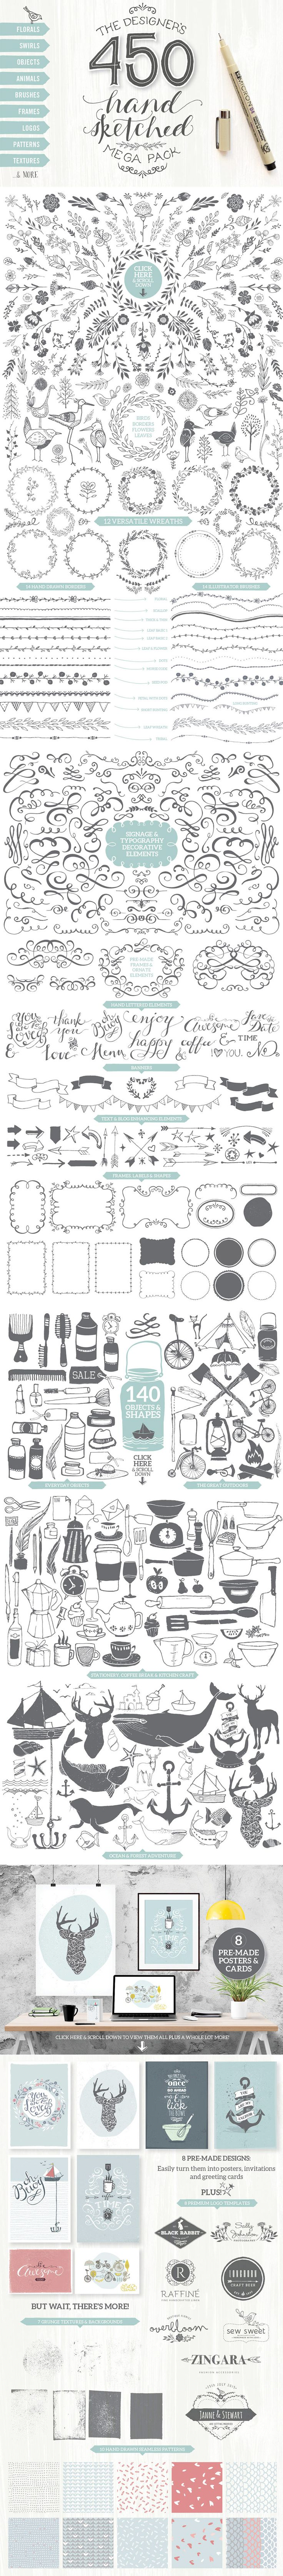 The Essential, Creative Design Arsenal (1000s of Best-Selling Resources) Just $29 - Designer's Hand Sketched Megapack by Lisa Glanz